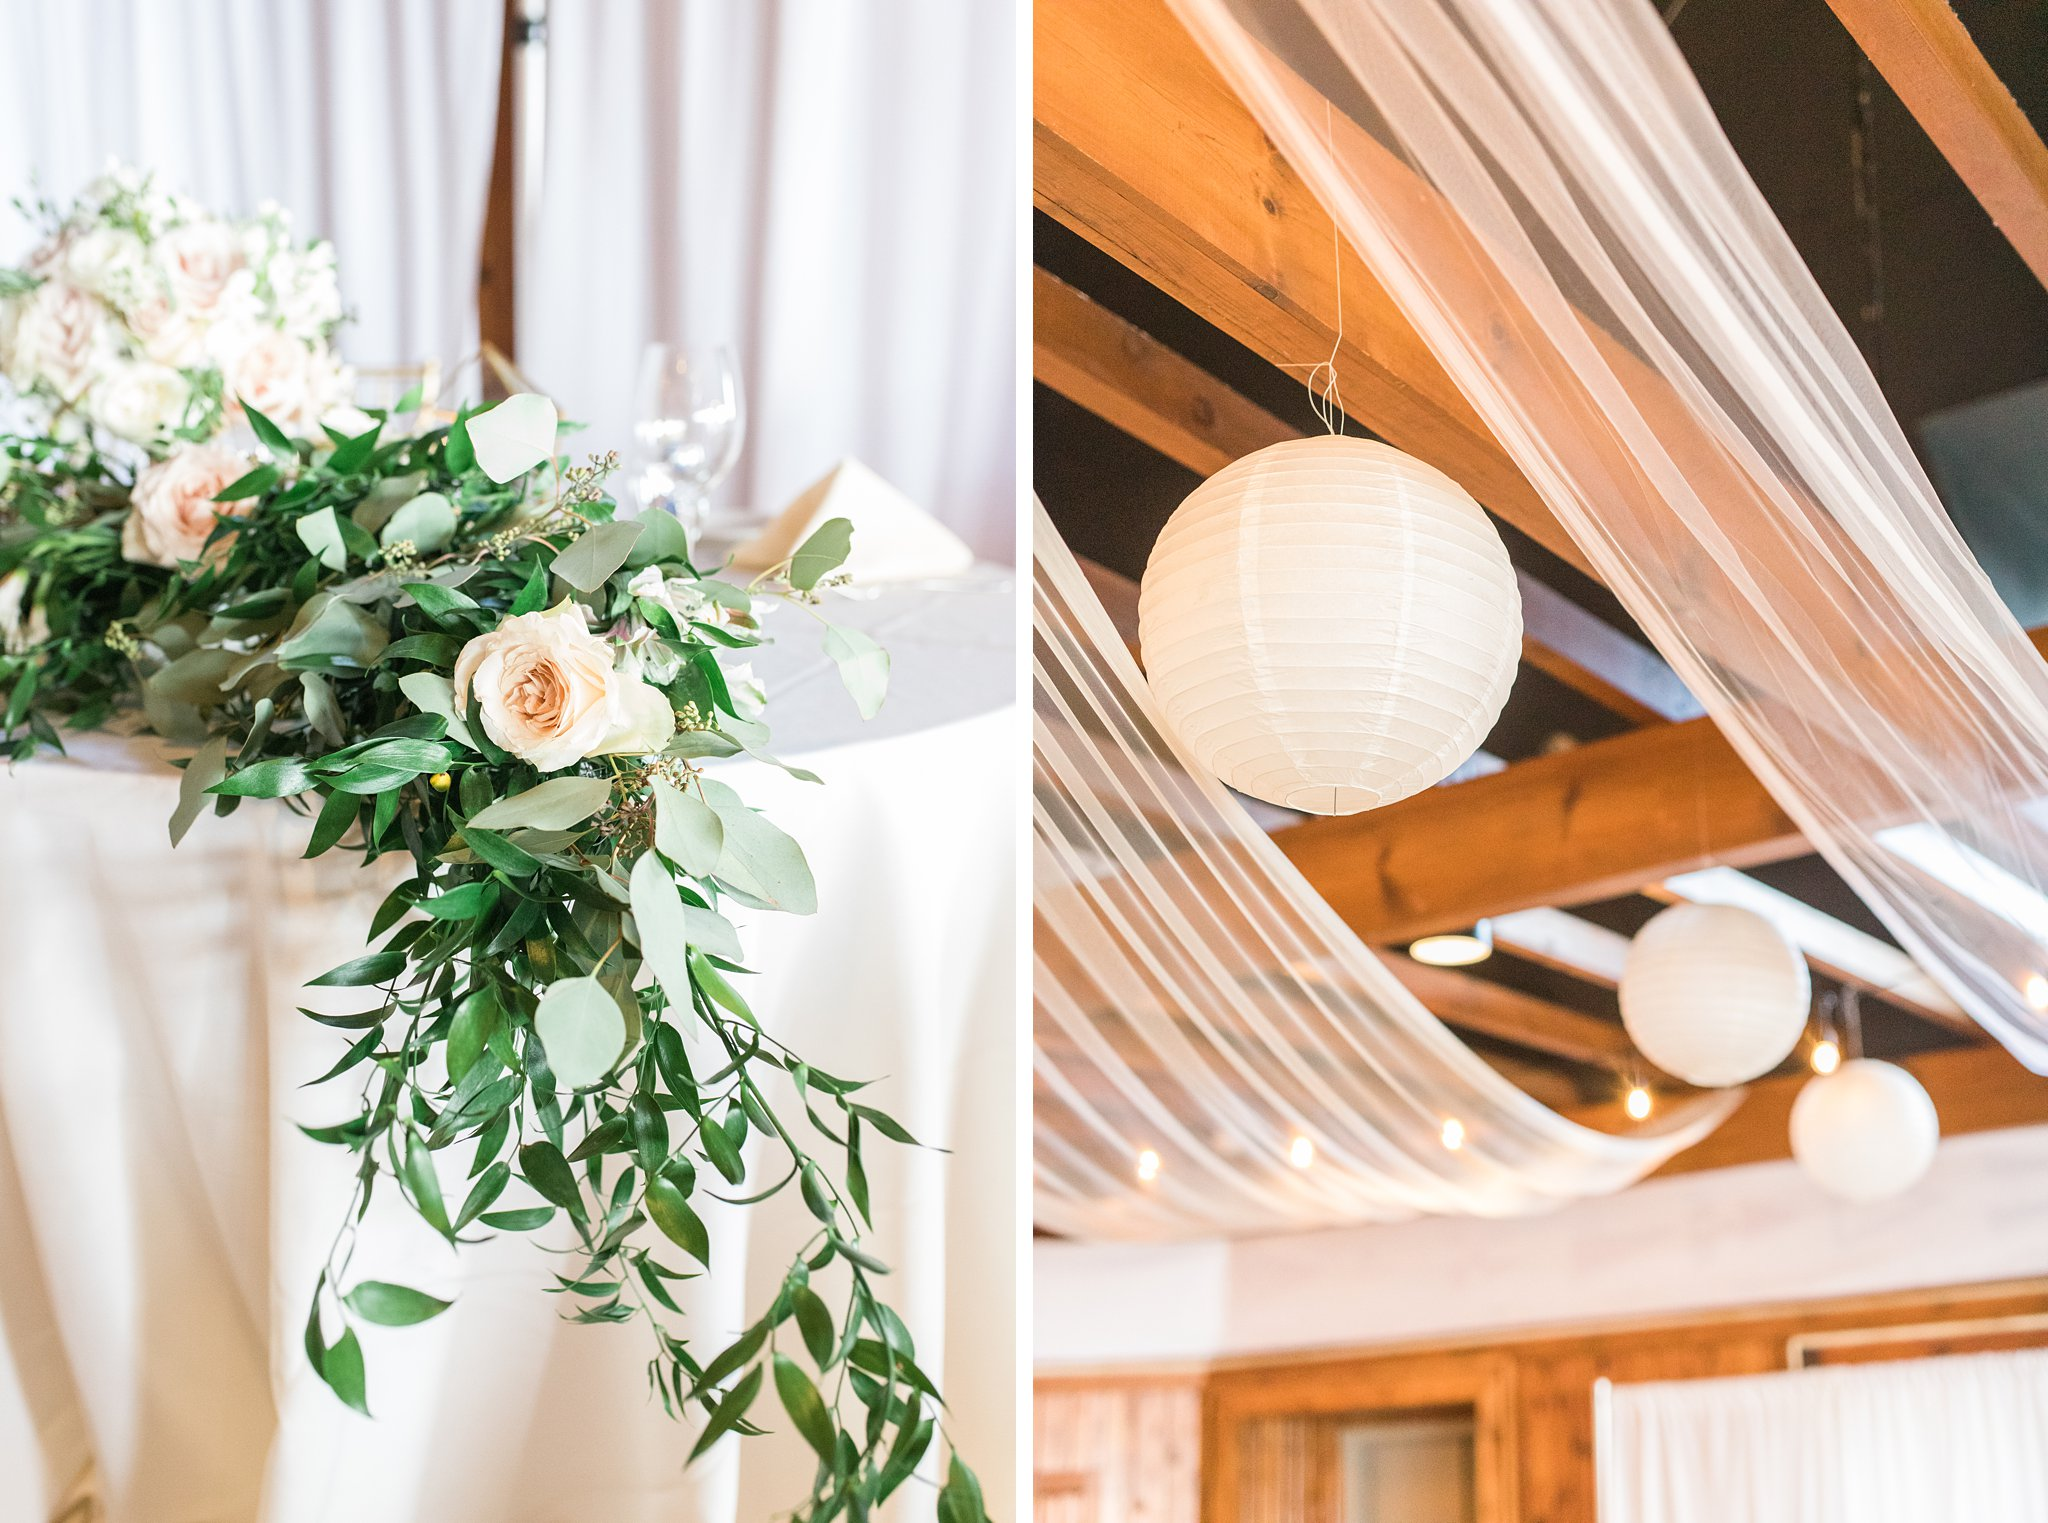 Ceiling drapery and florals, Britannia Yacht Club Wedding Photos, Amy Pinder Photography